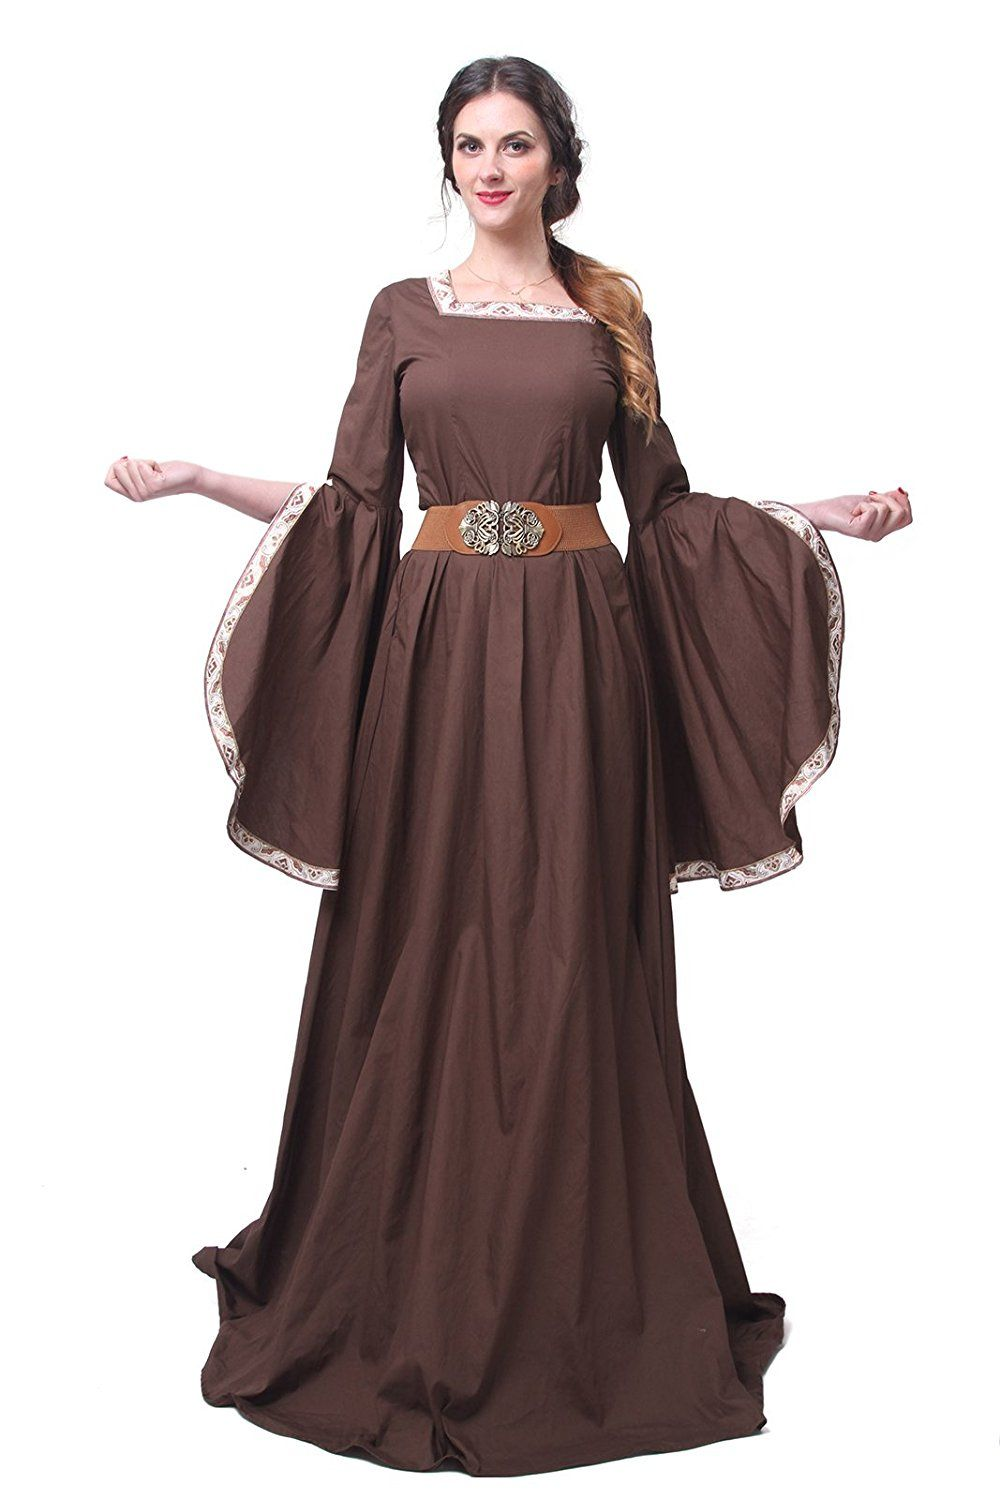 e0fc6c0b6f Women s Brown Square Neck Embroidered Trim Medieval Belted Palace Dress  Costume - DeluxeAdultCostumes.com